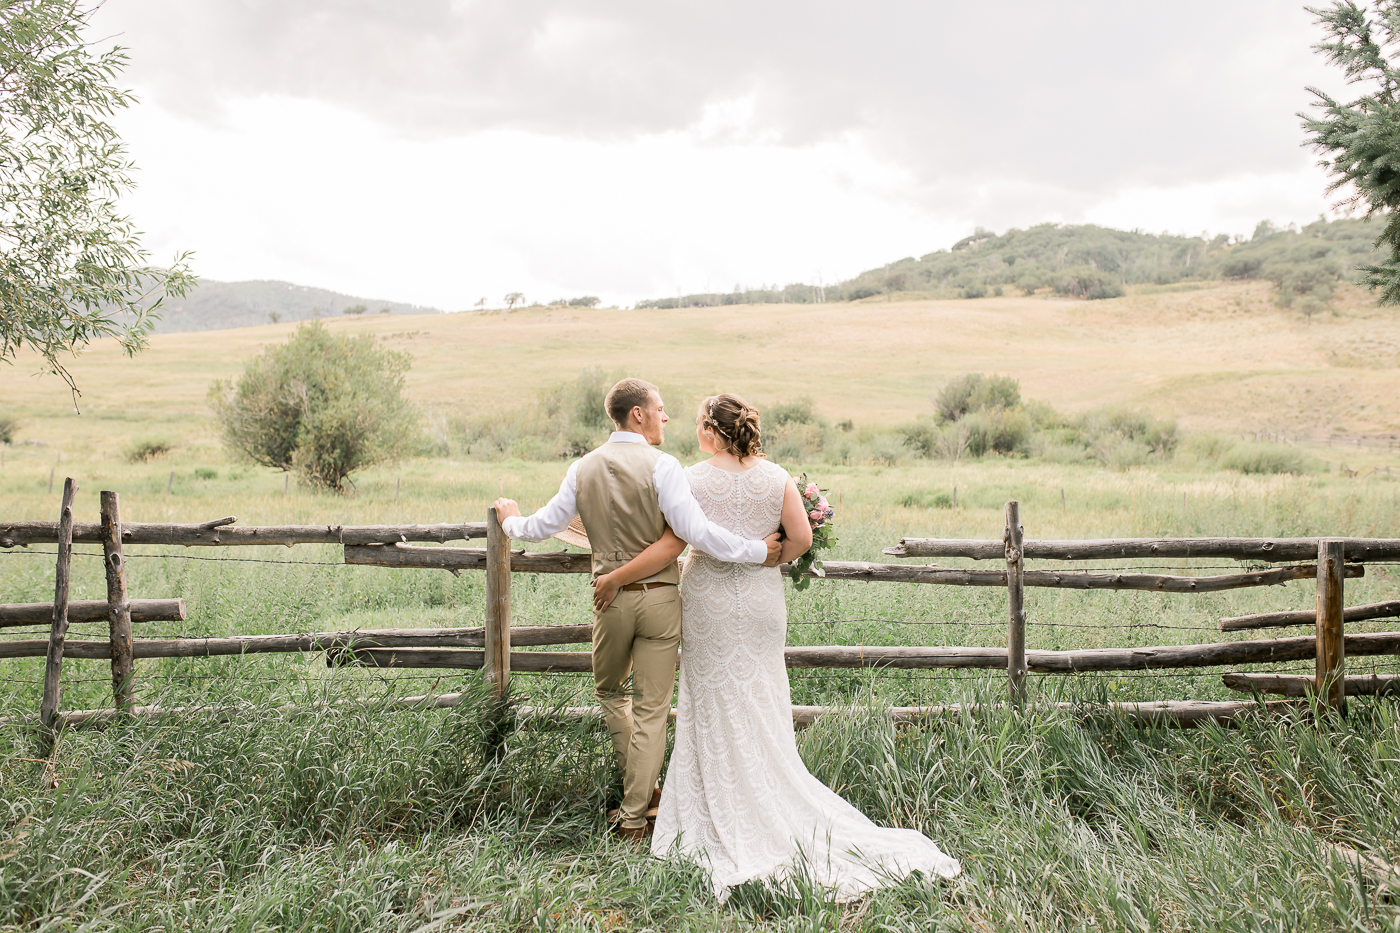 Ranch and farmhouse wedding in Clark, CO by Megan Lee Photo